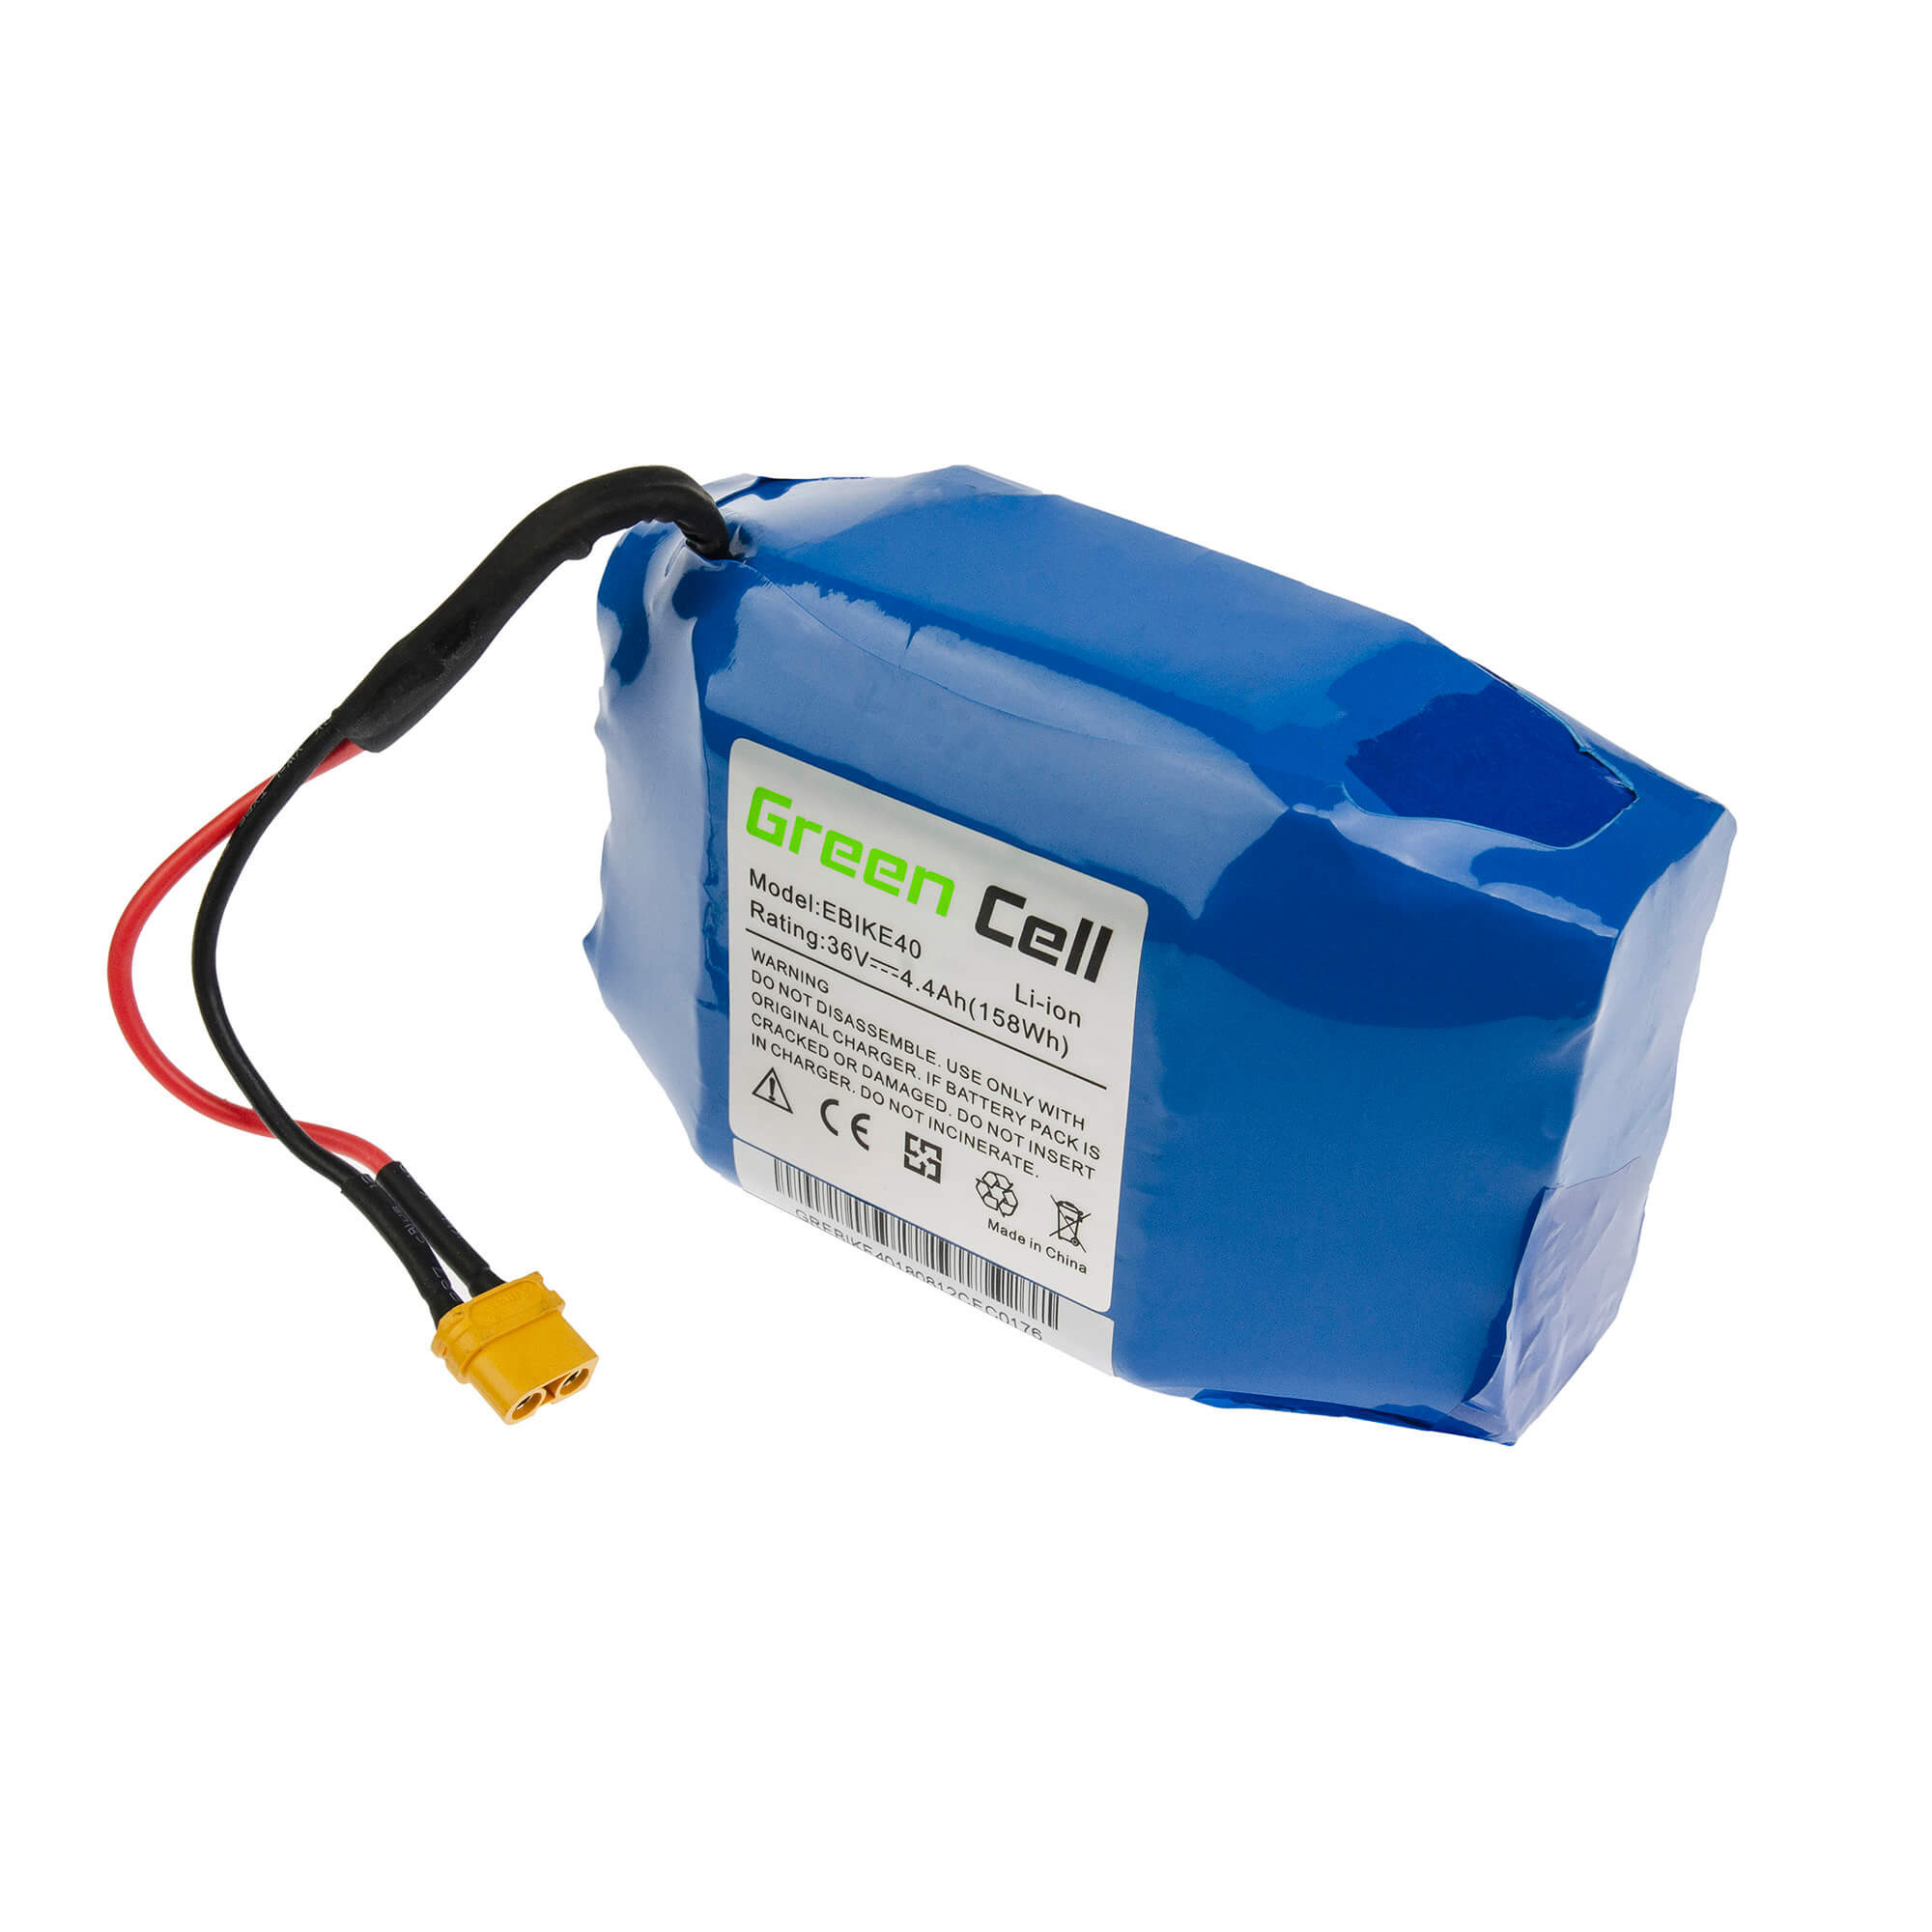 Green Cell Battery for Hoverboard, electric board 36V 4,4Ah 158Wh